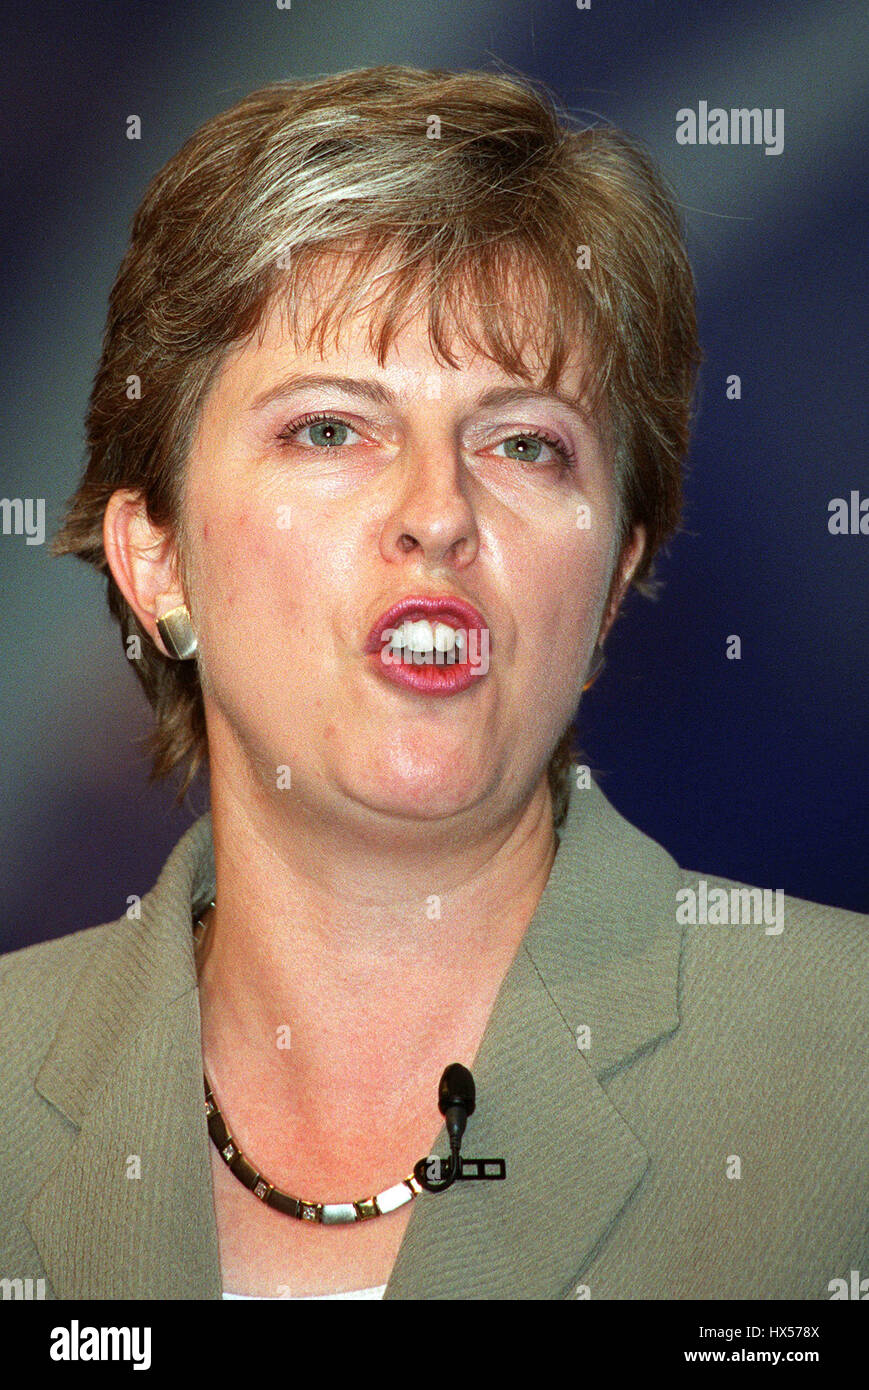 THERESA MAY MP SHADOW CAB. WOMENS ISSUES 02 October 2000 BOURNEMOUTH BOURNEMOUTH - Stock Image